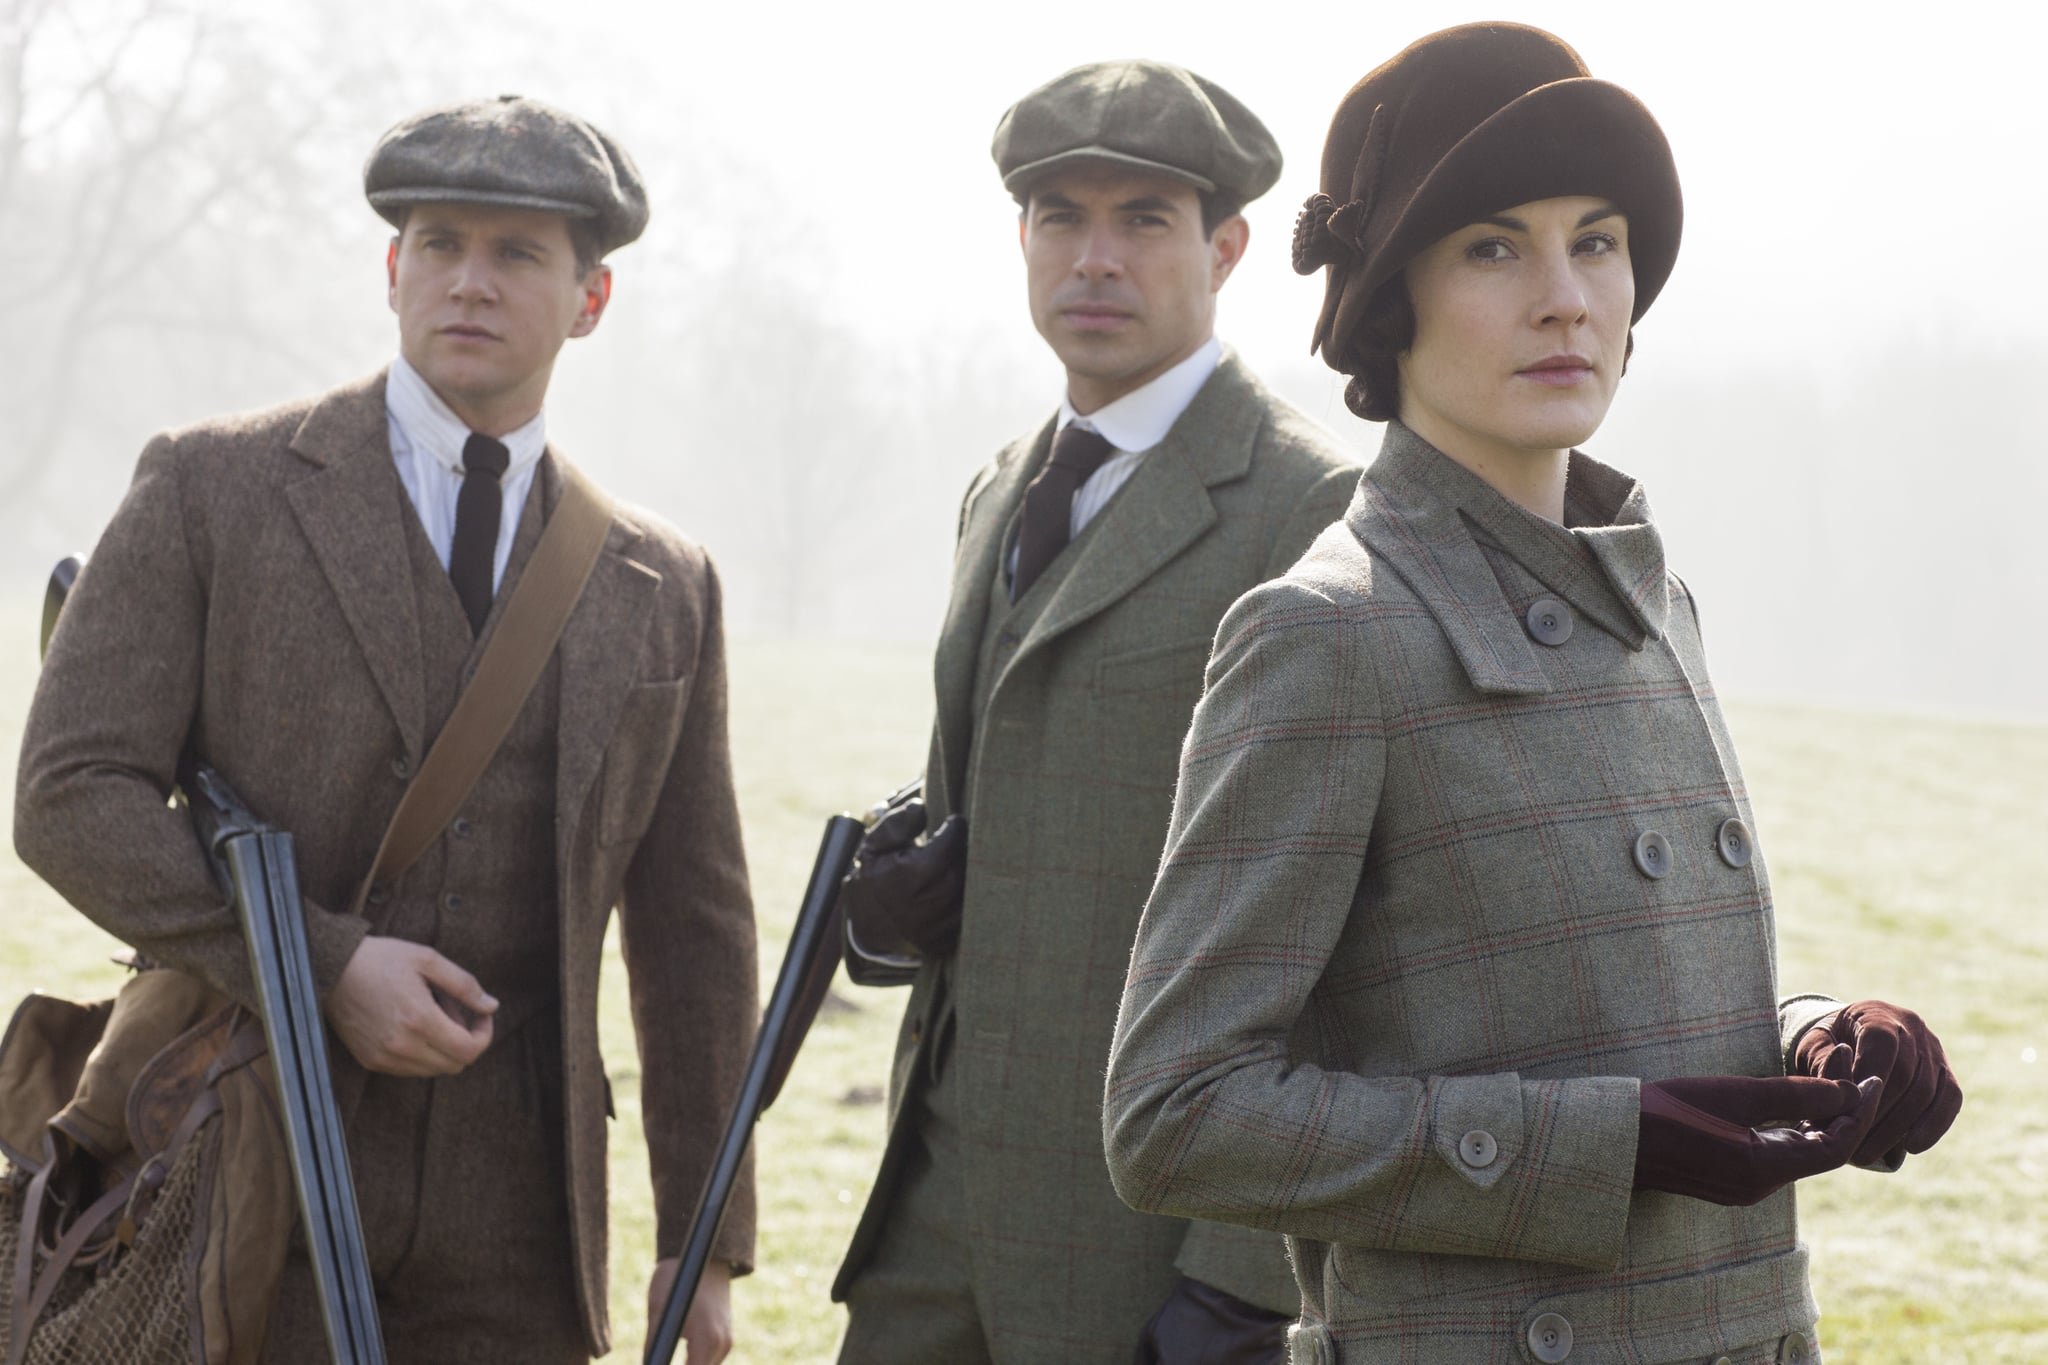 Tom Branson (Allen Leech), Lord Gillingham (Anthony Foyle), and Lady Mary (Michelle Dockery) go hunting.